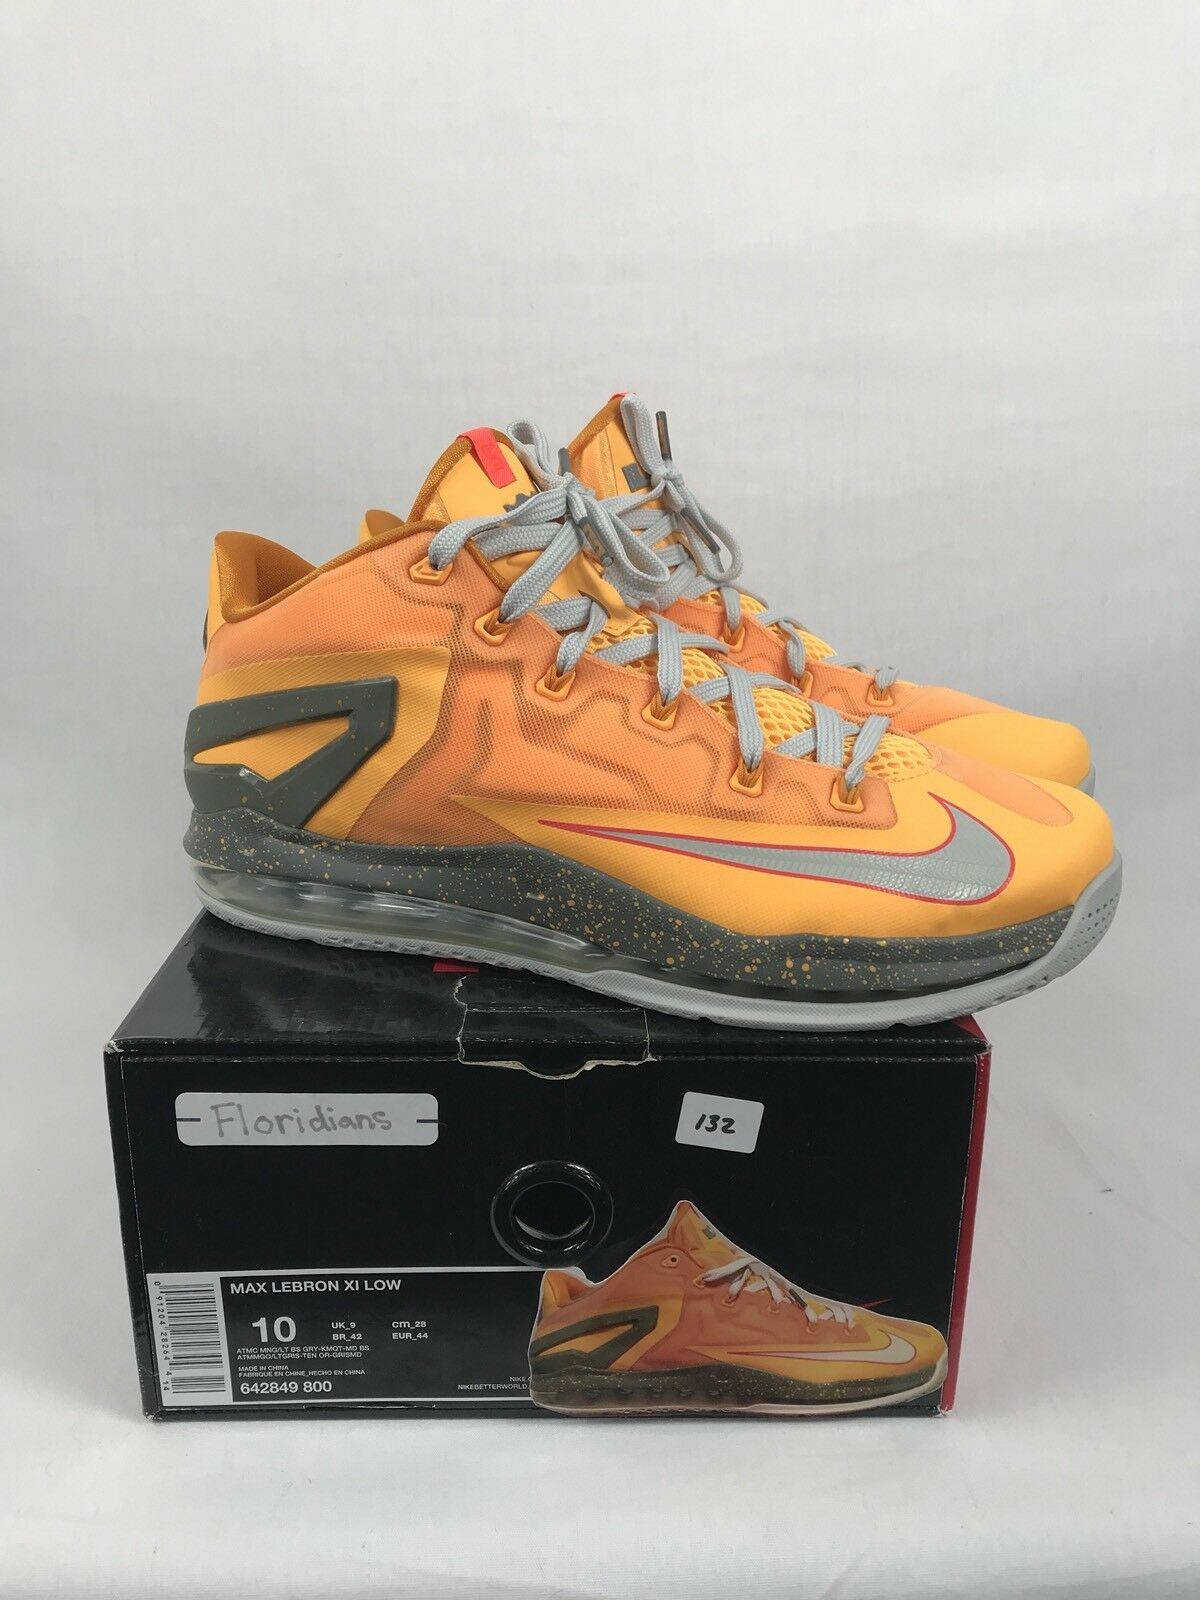 "2014 Nike Max LeBron XI(11) Low ""Floridians"" Shoes Size 10 With Box 642849-800"